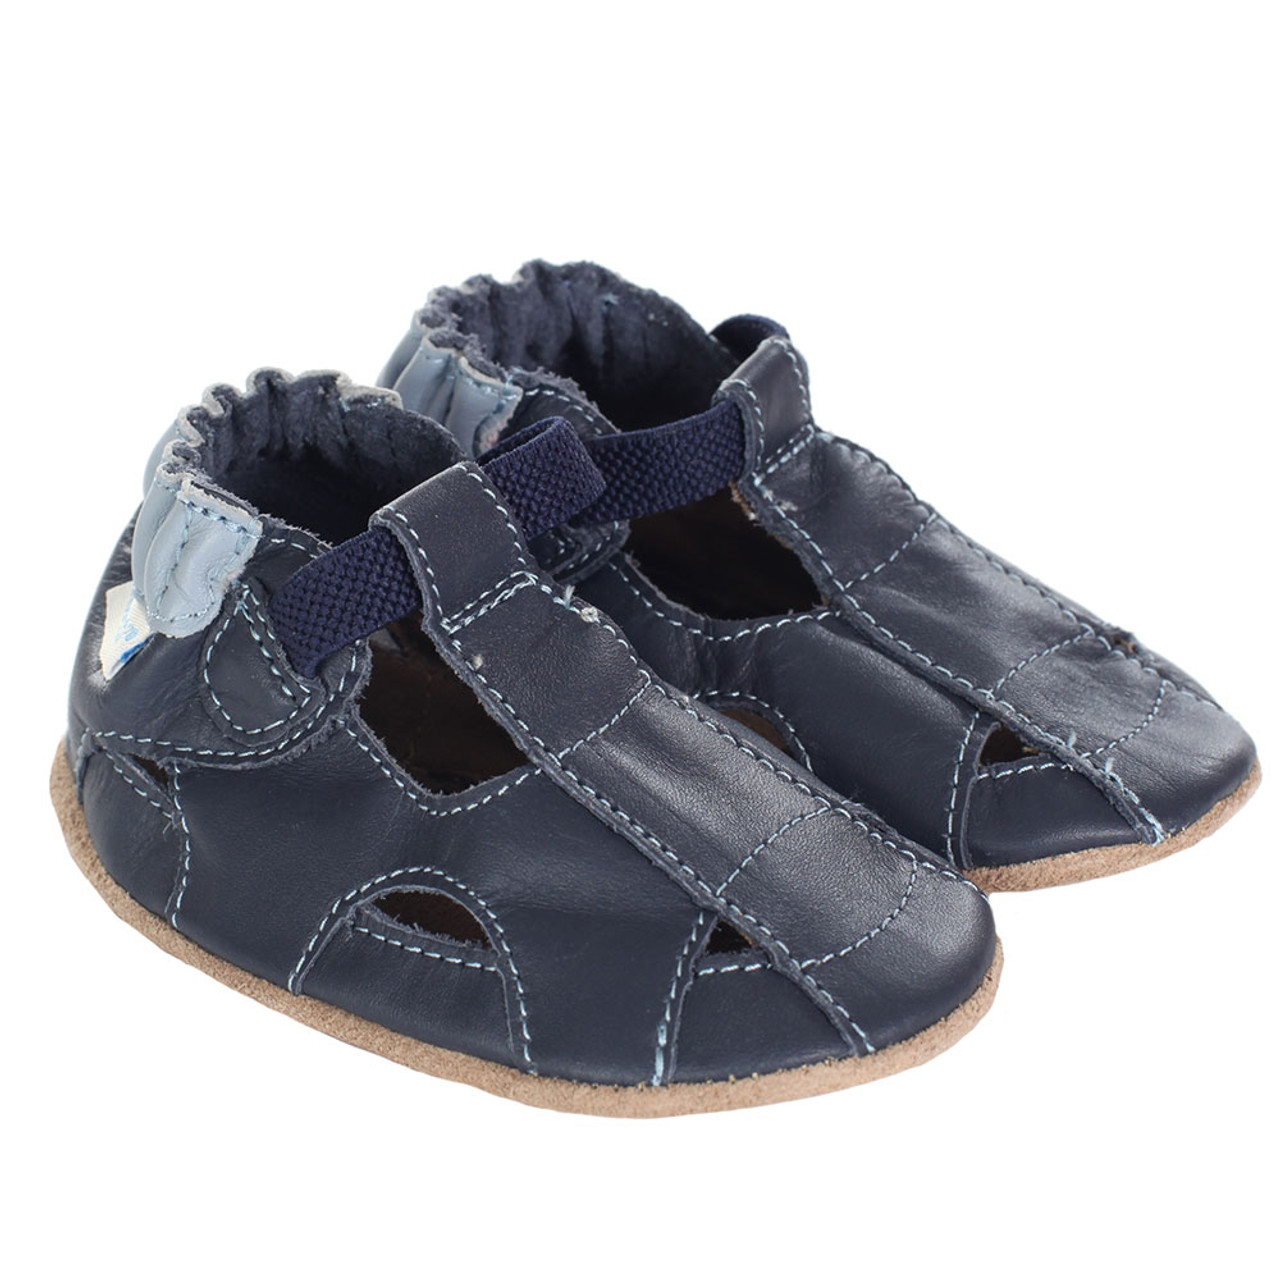 60e6f0b27 Robeez Fisherman Sandal Navy Soft Soles - Angle